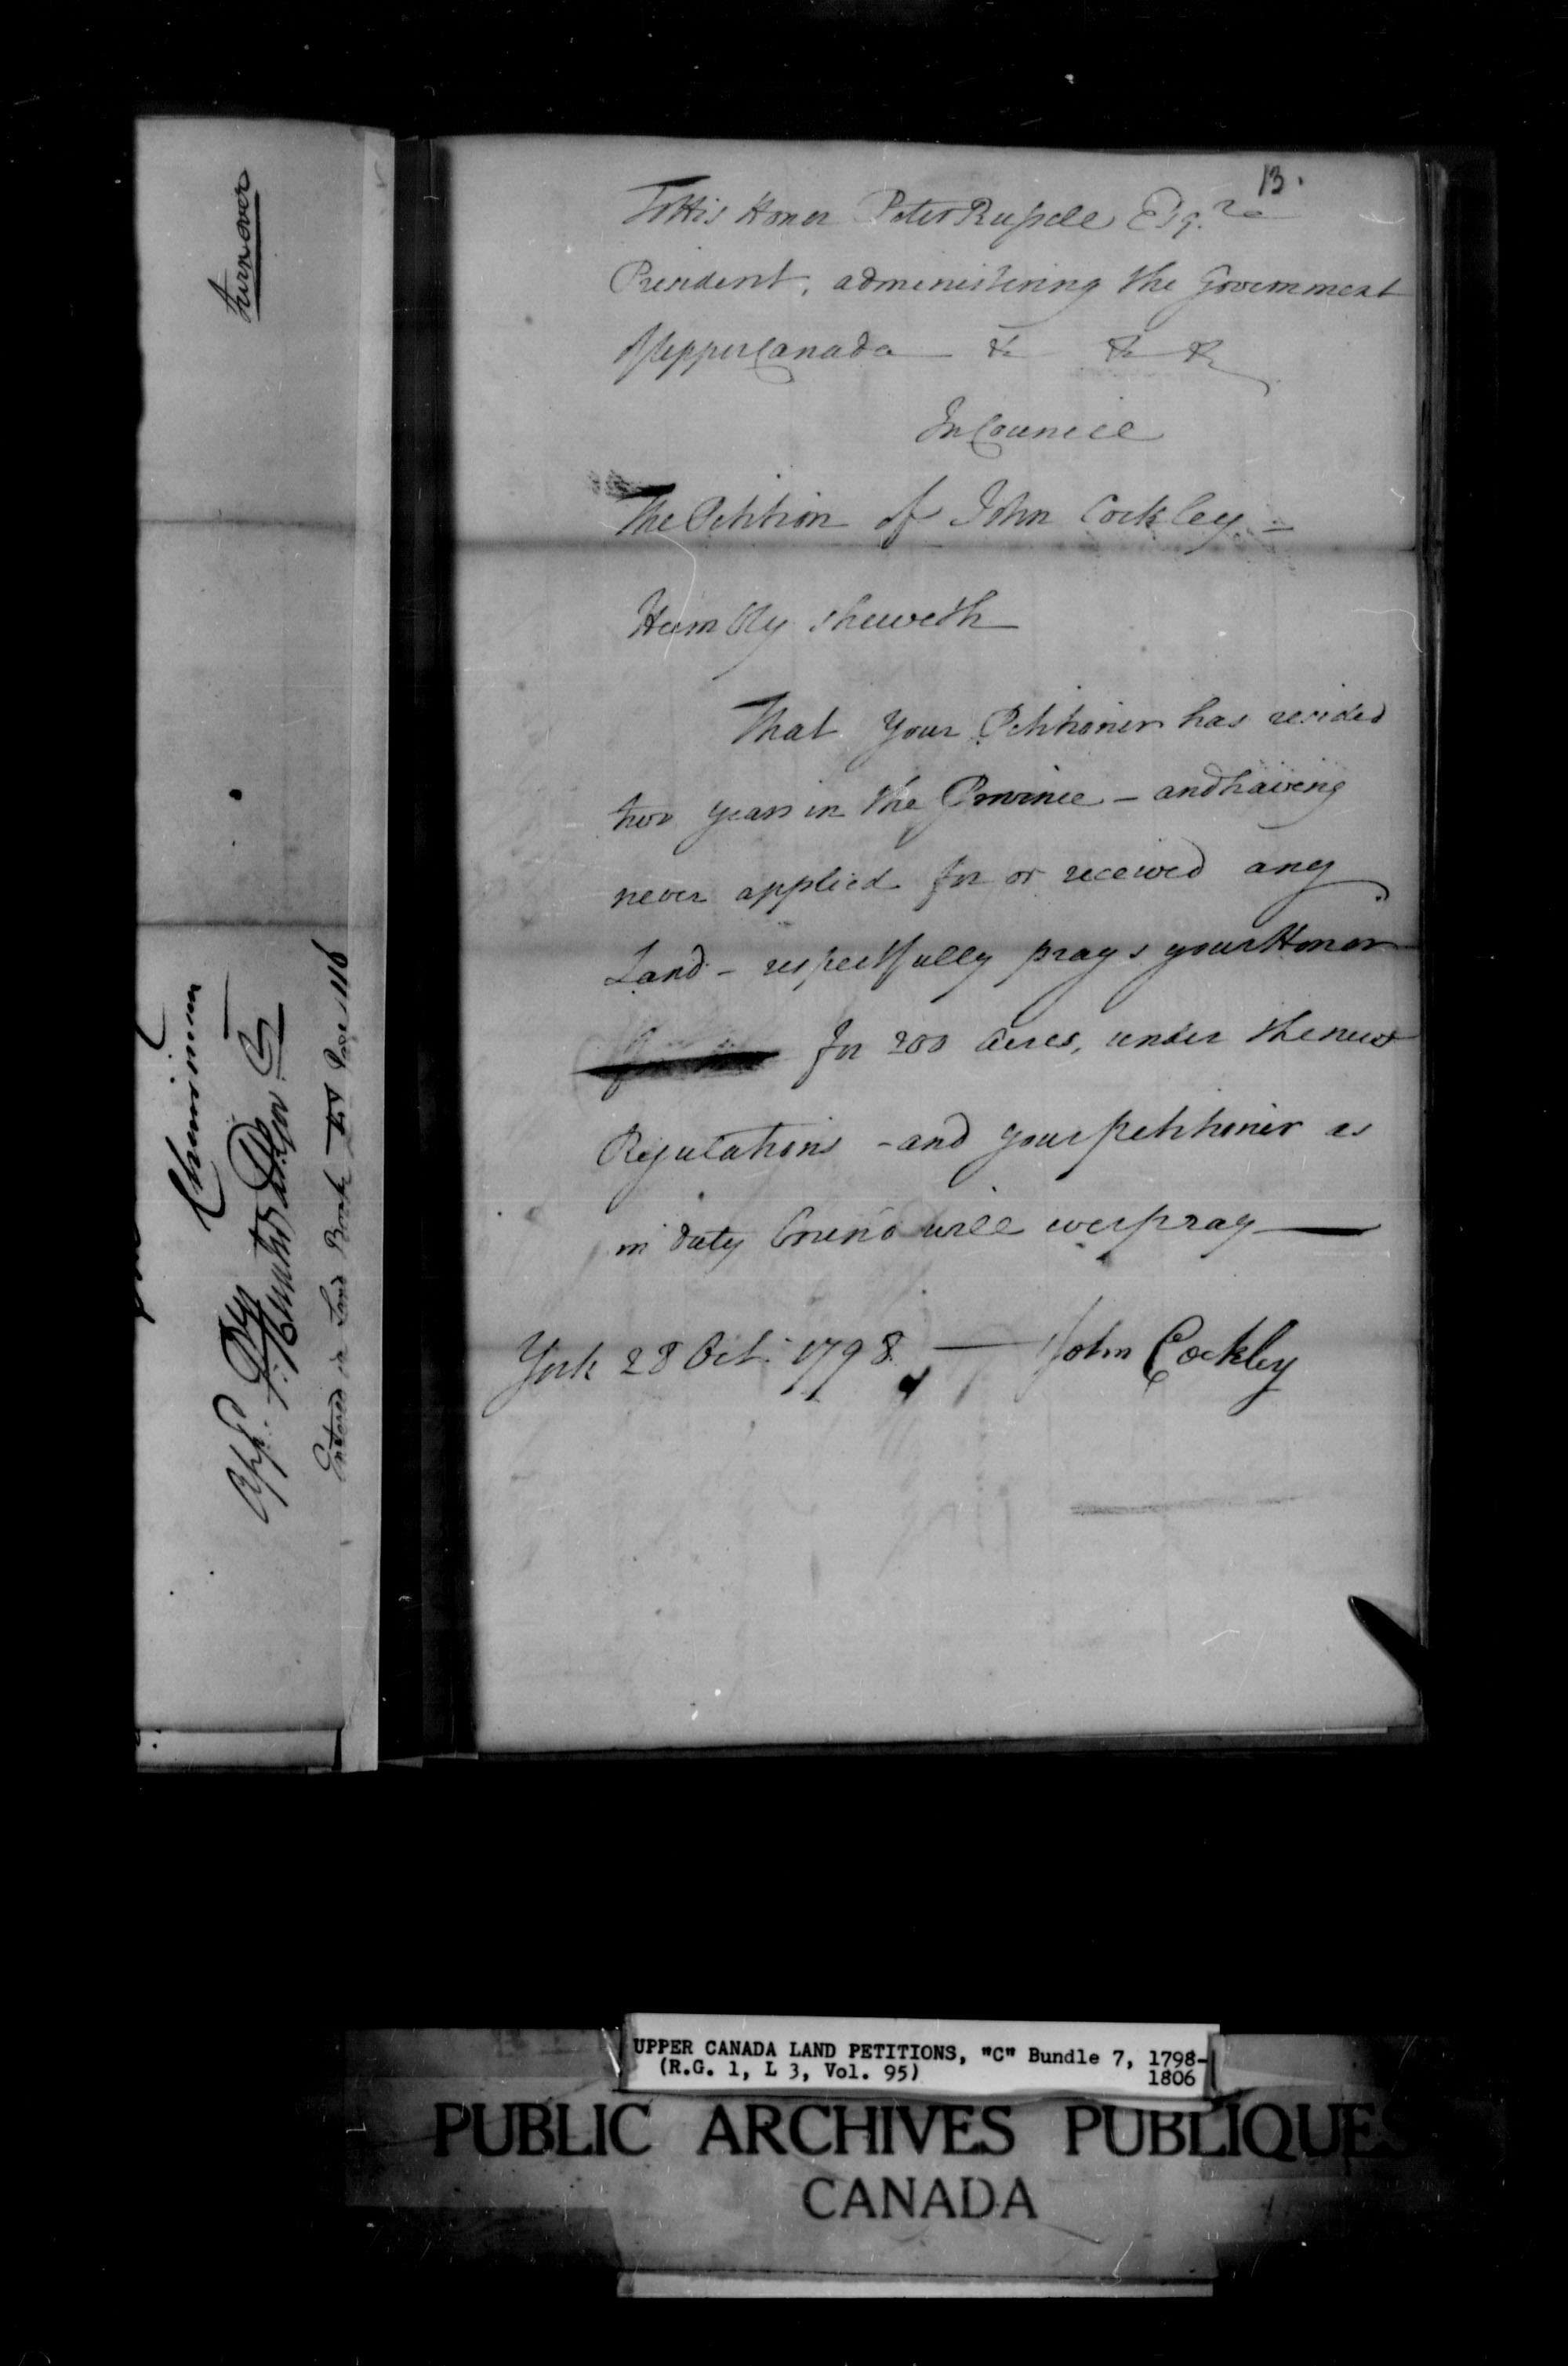 Title: Upper Canada Land Petitions (1763-1865) - Mikan Number: 205131 - Microform: c-1650